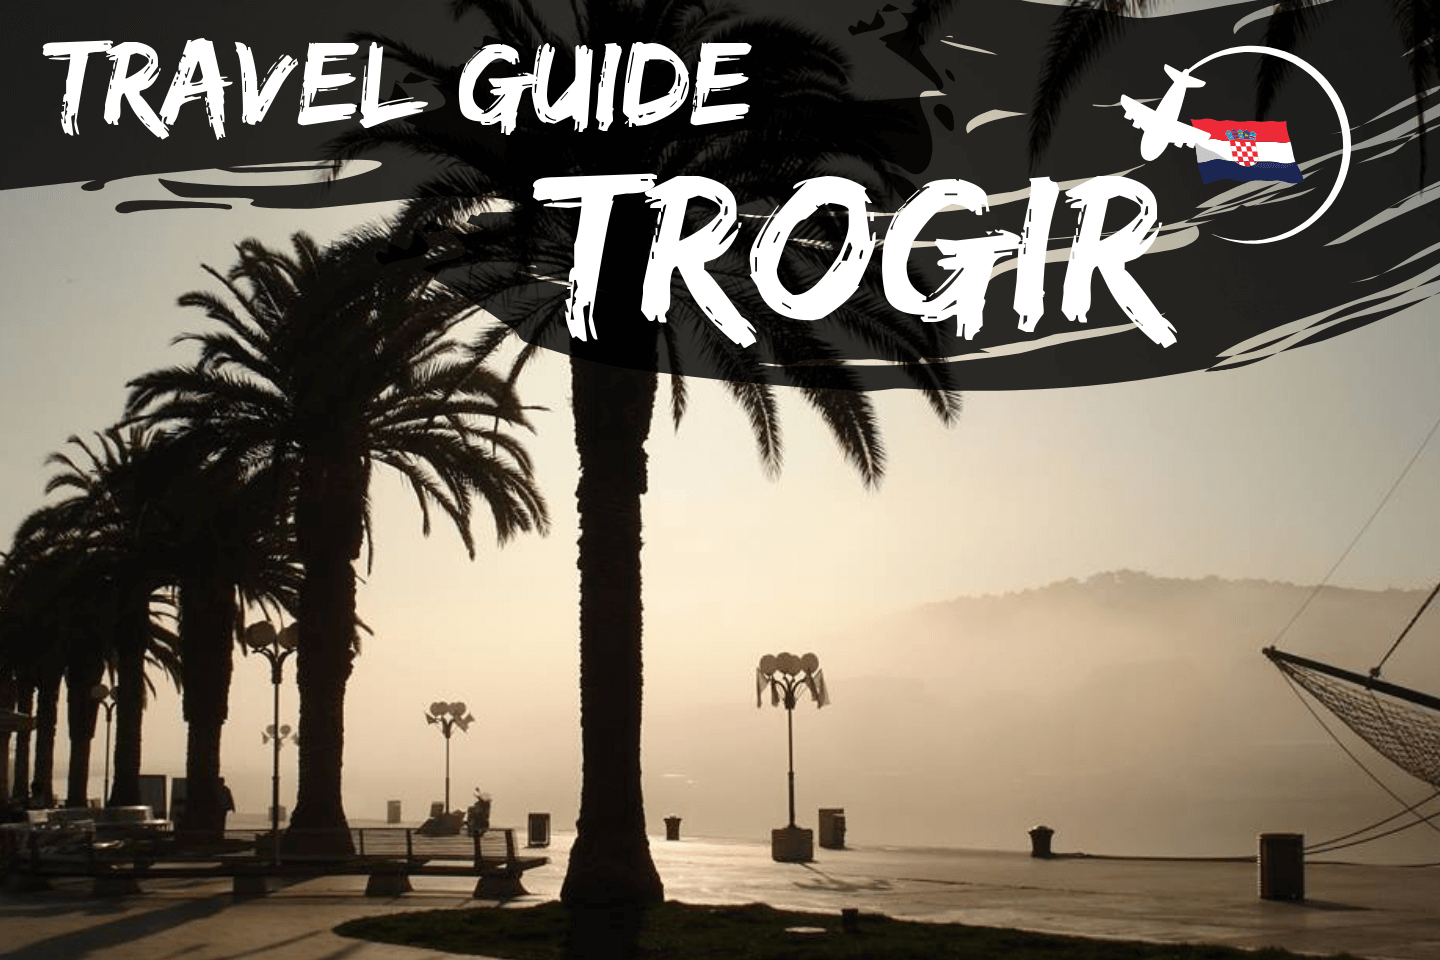 Trogir City Travel Guide